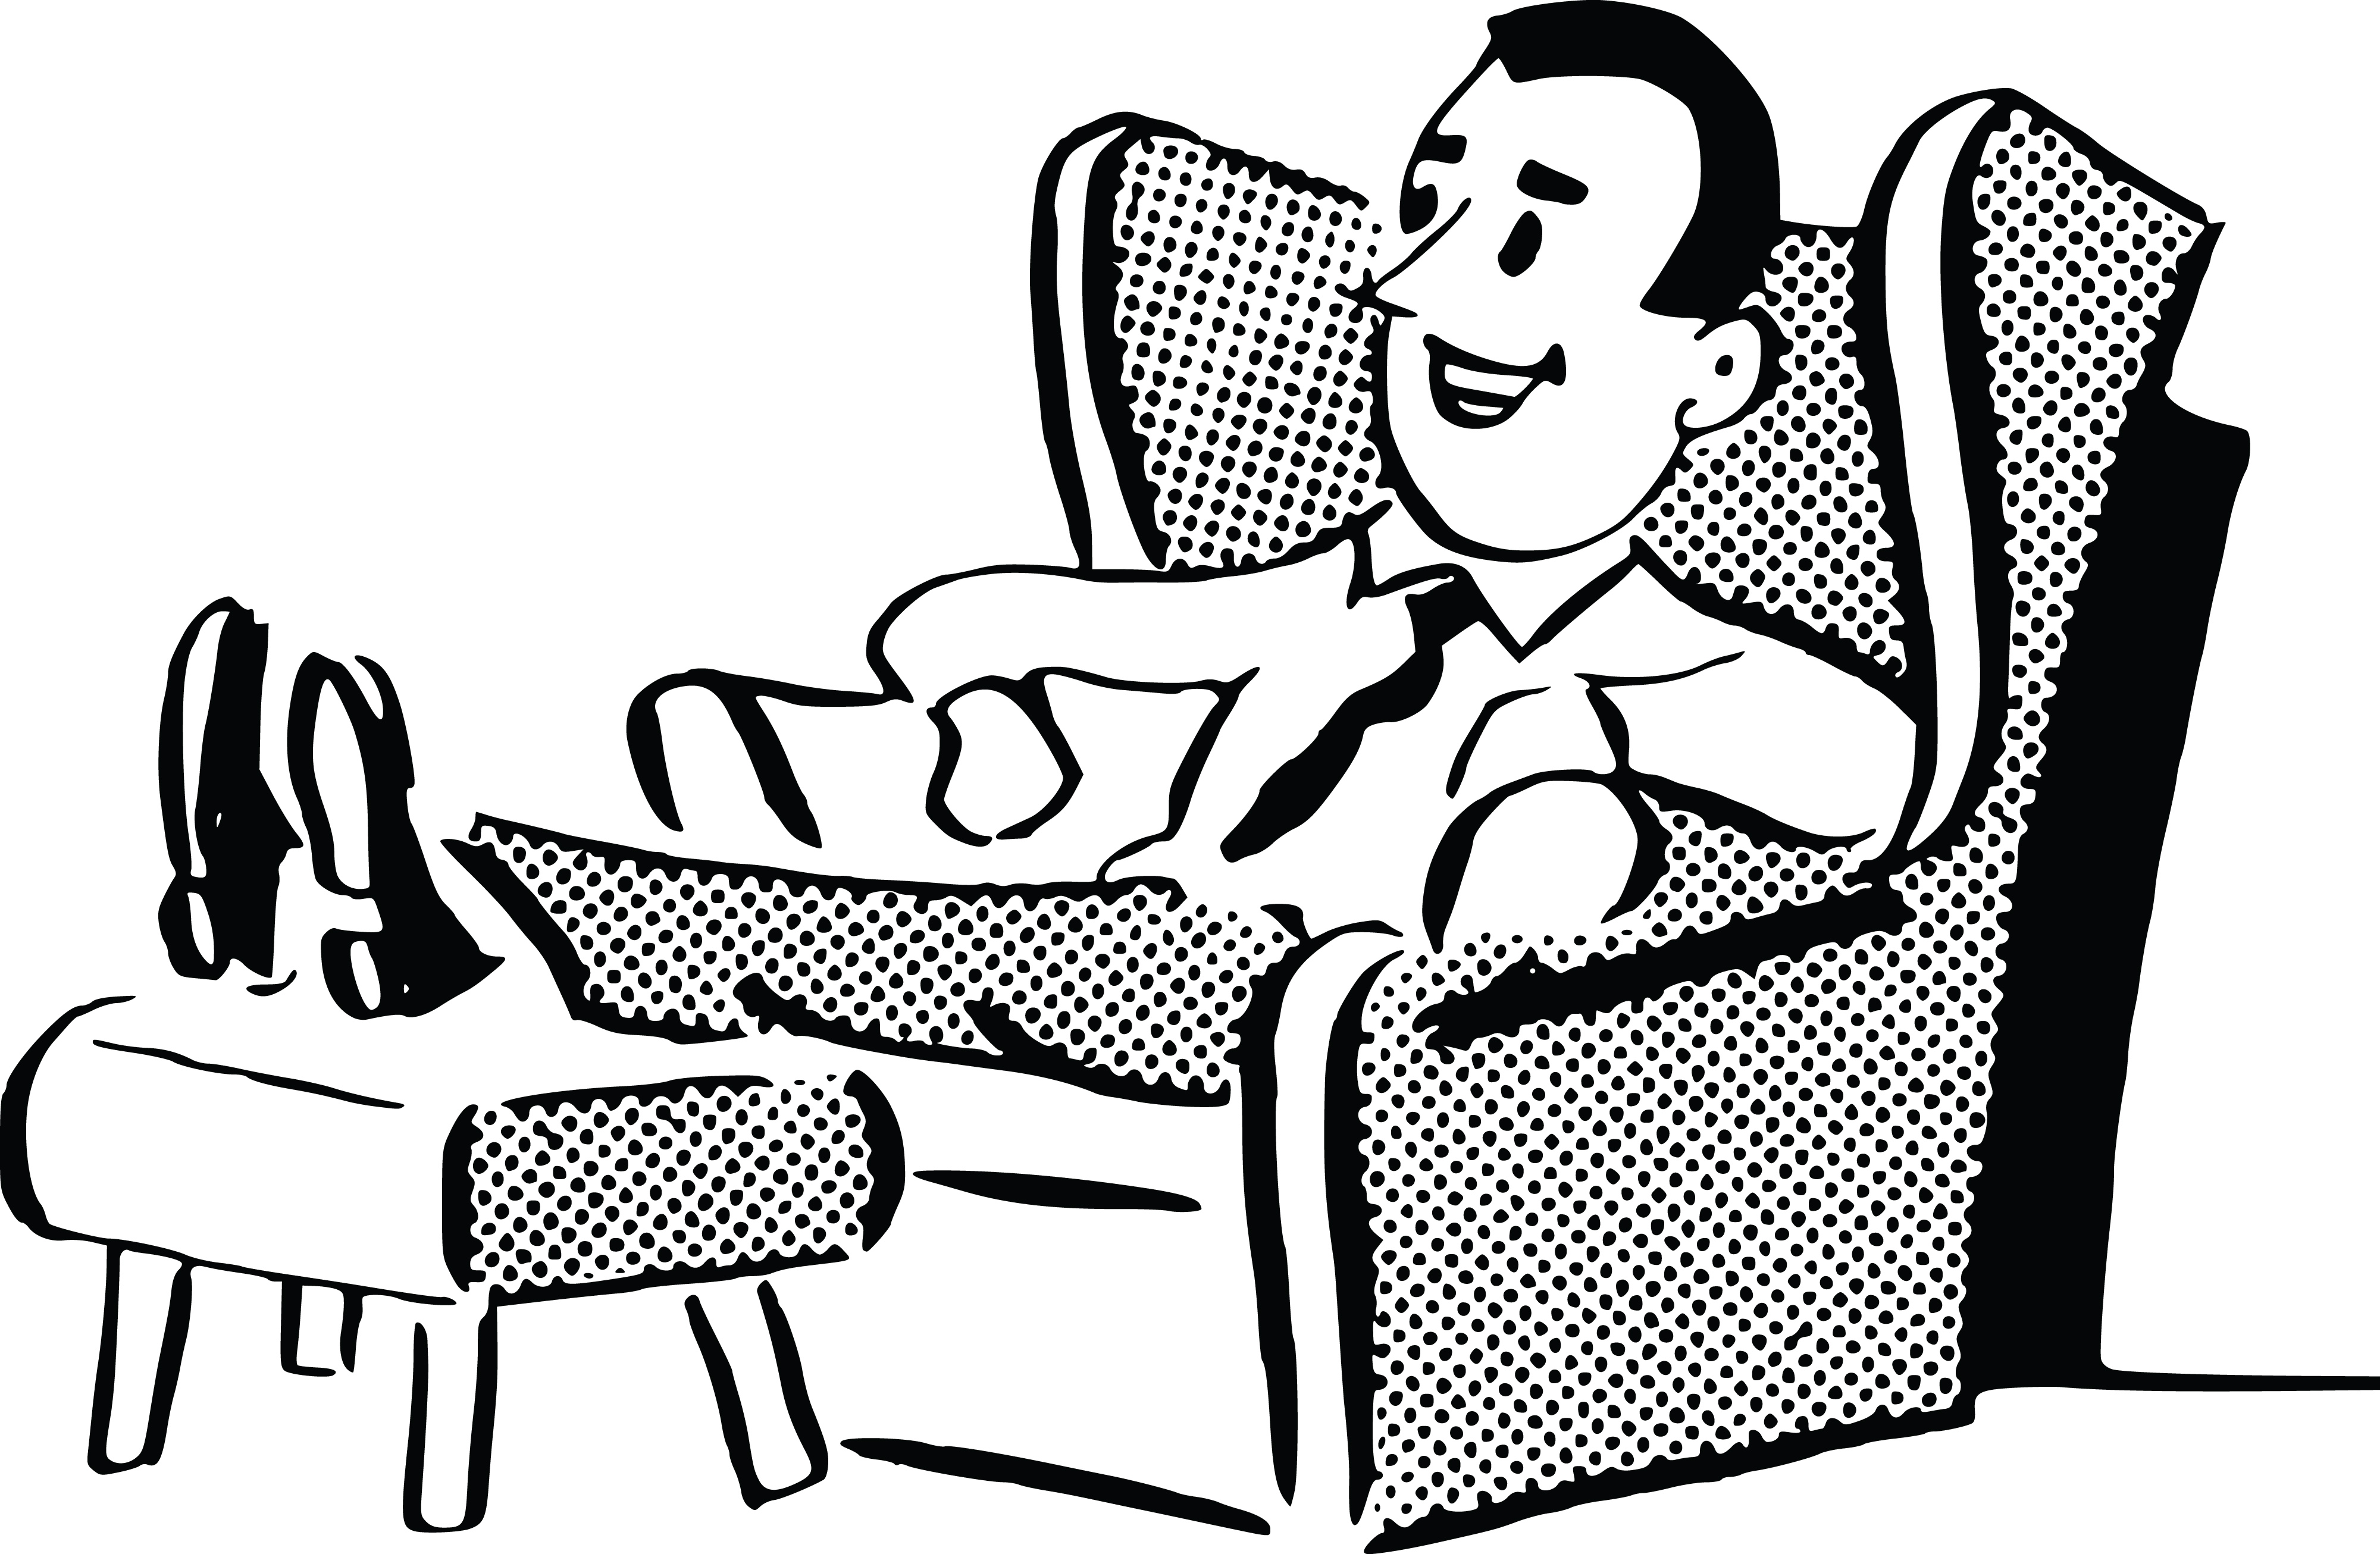 839 Relaxing free clipart.